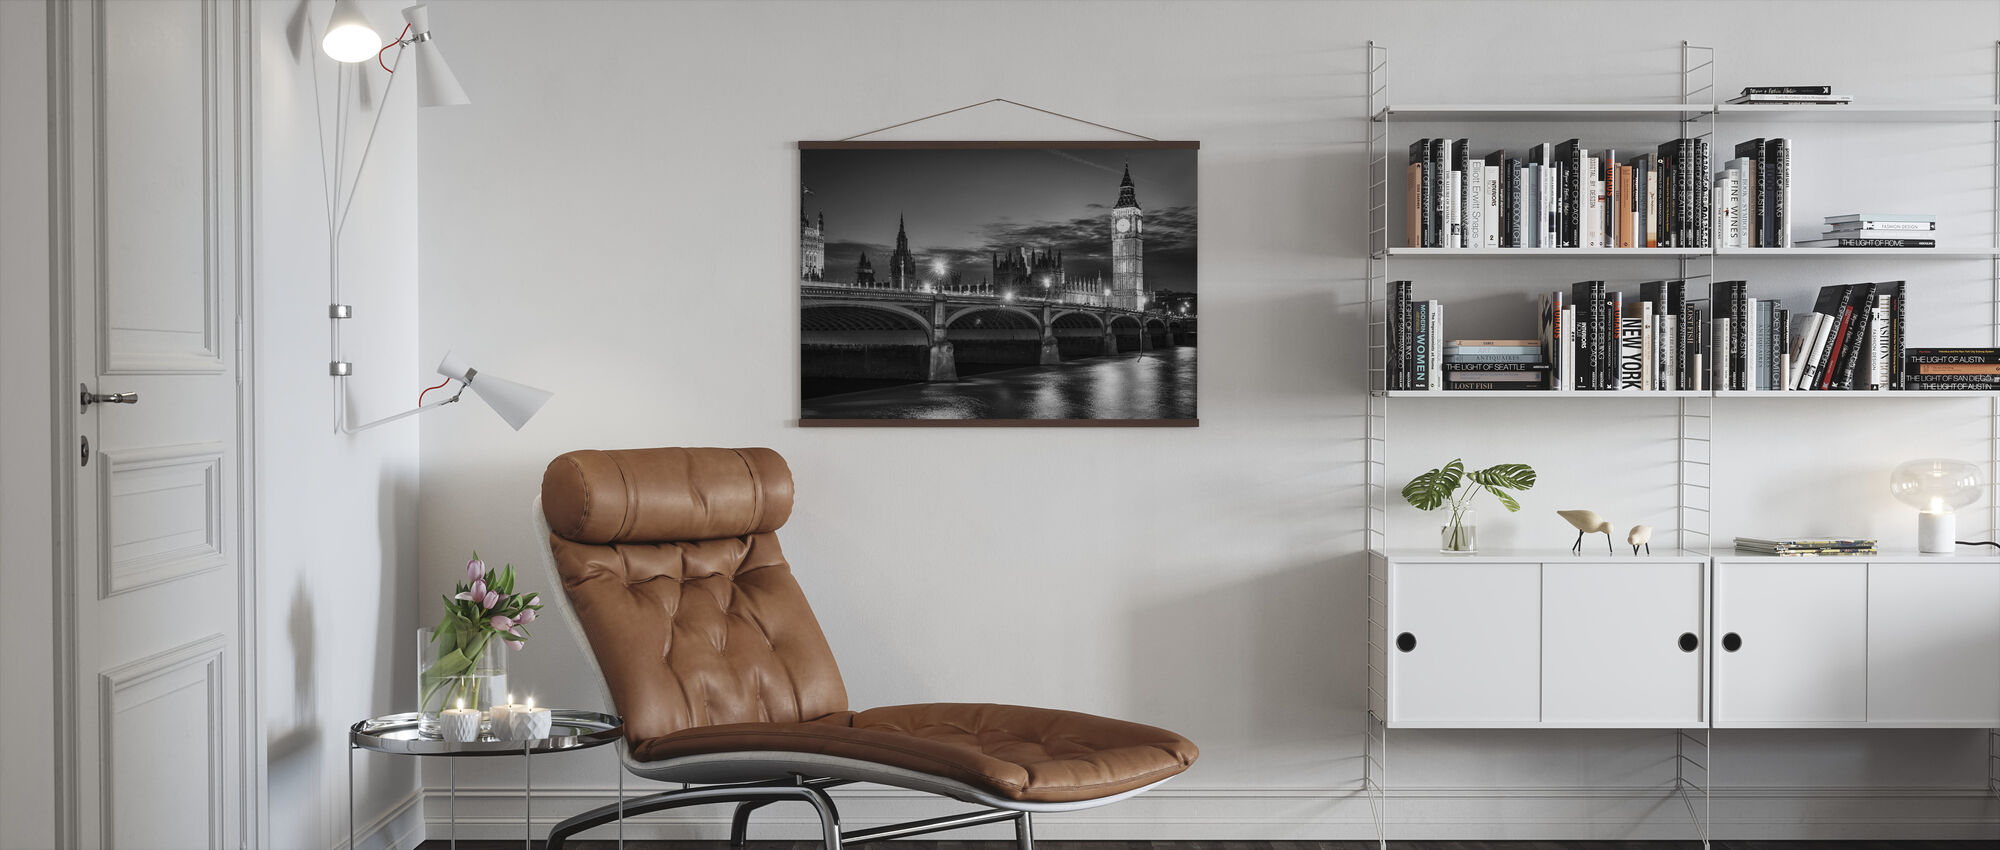 Heritage - Poster - Living Room